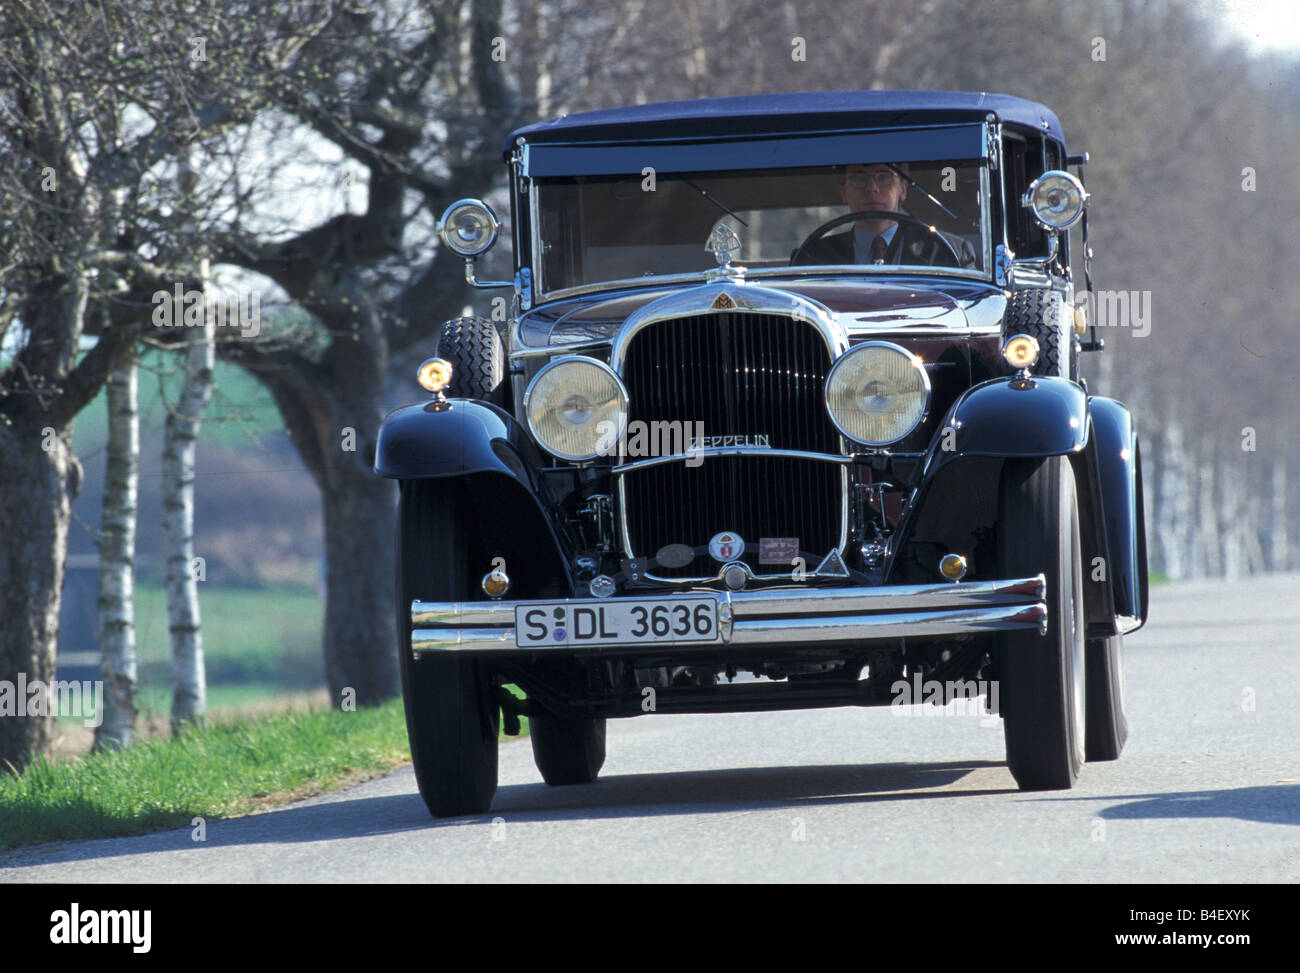 Car, Maybach Zeppelin, vintage car, 1930s, thirties, black,  driving, diagonal front, front view, road, country - Stock Image